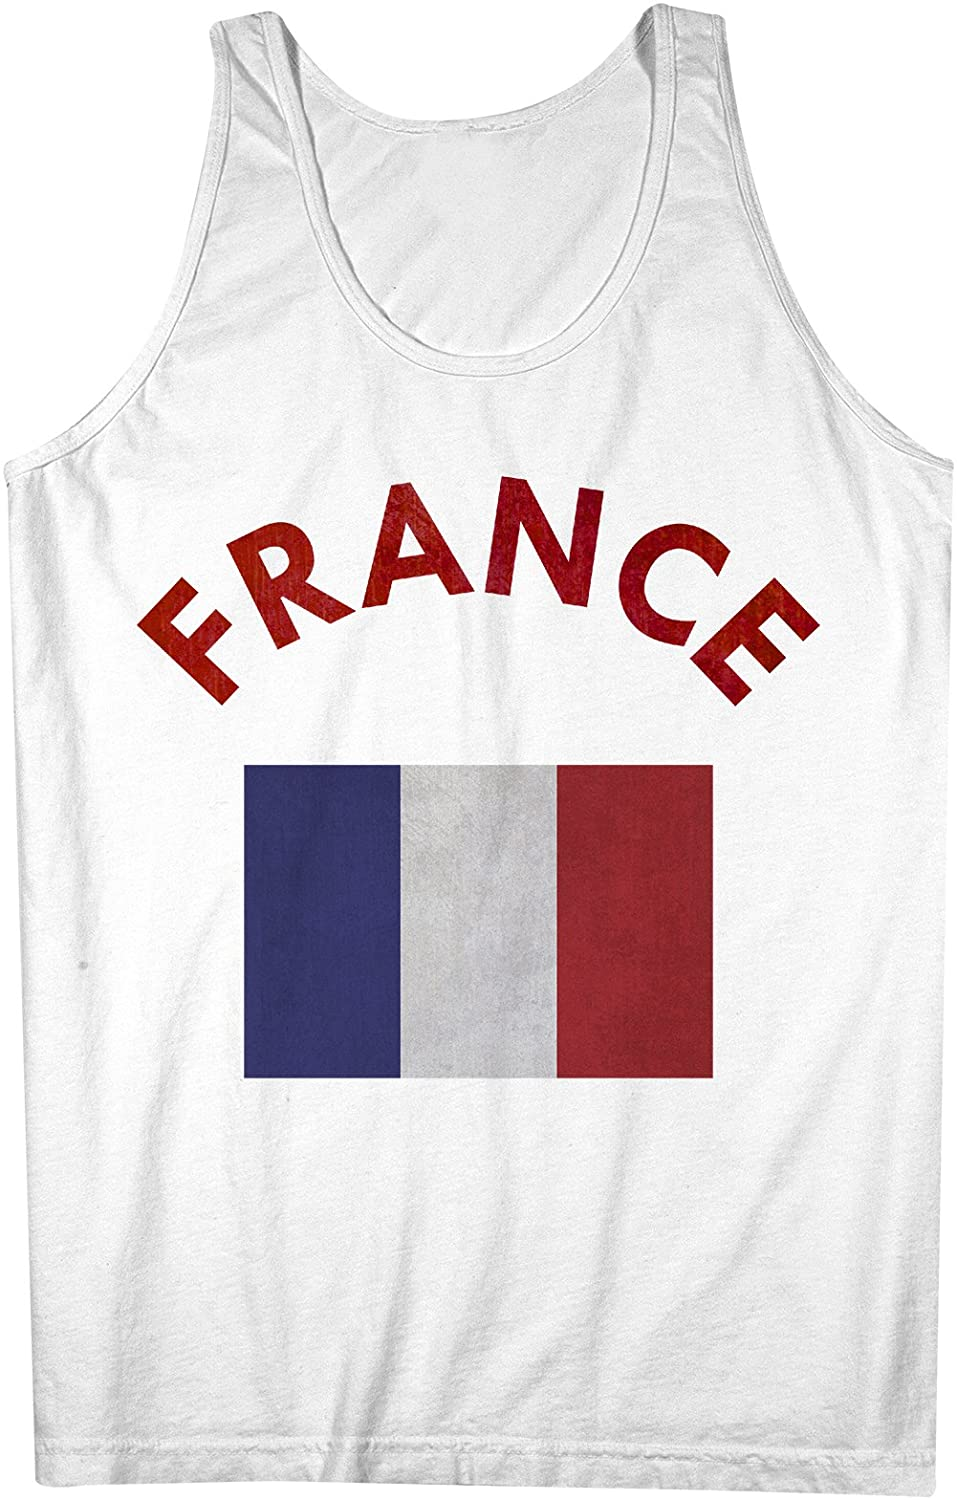 France French Flag 男性用 Tank Top Sleeveless Shirt